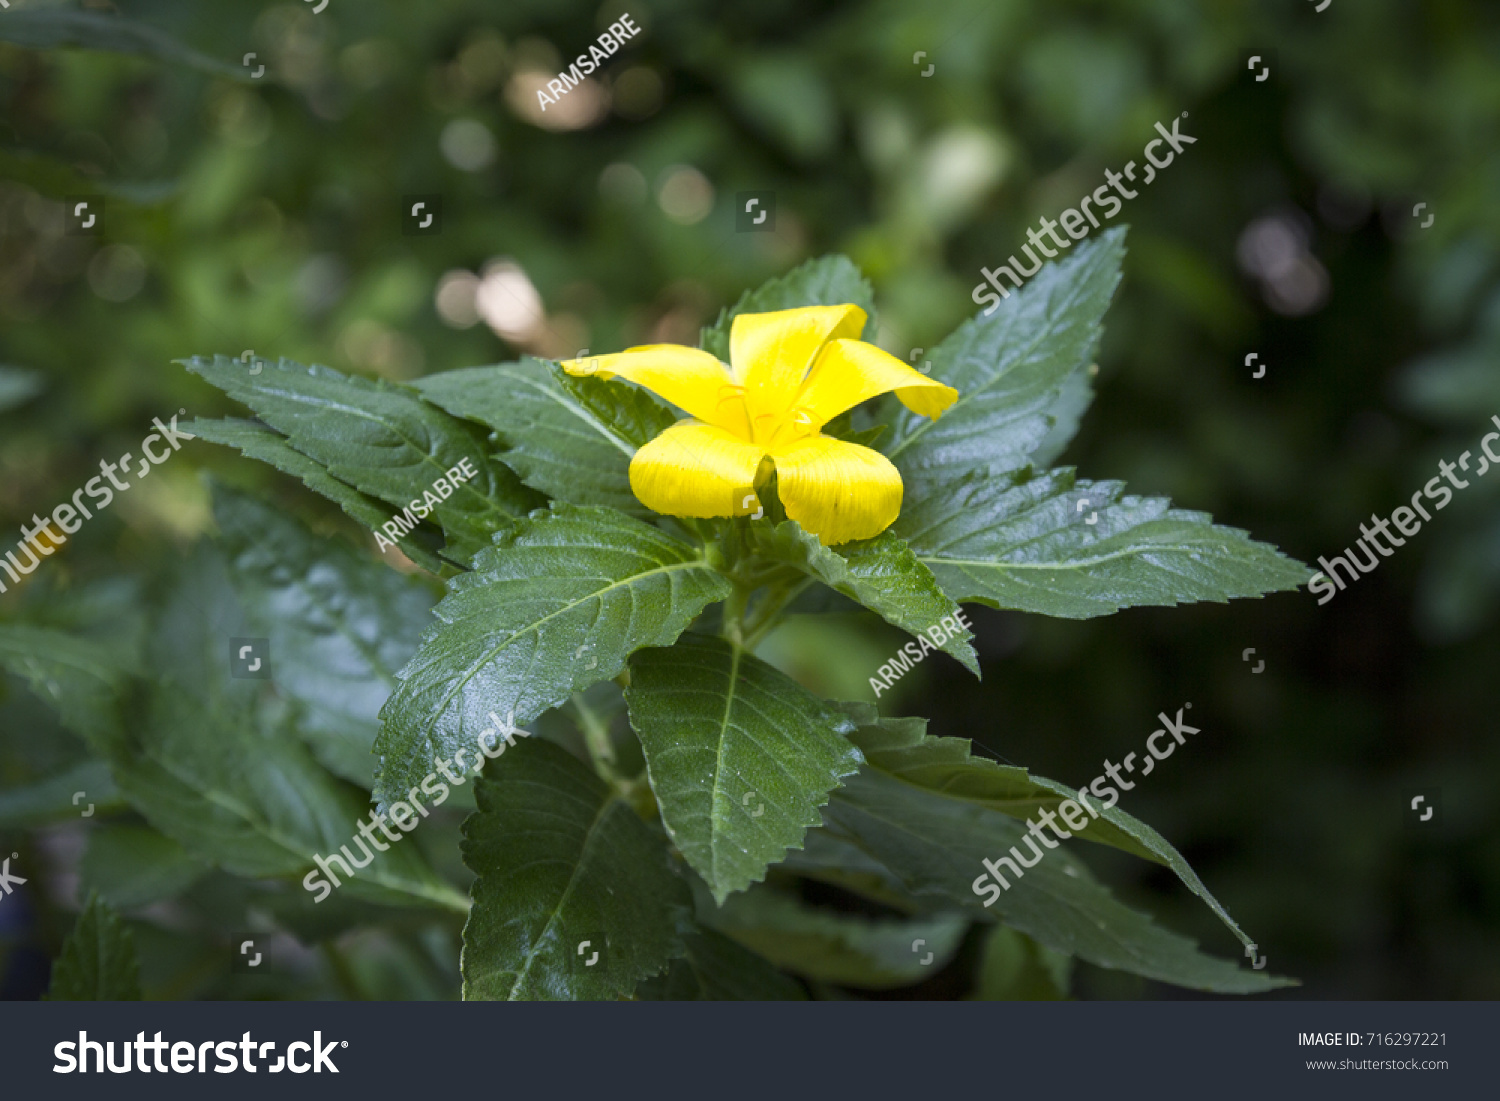 Yellow sage rose flower has 5 stock photo 716297221 shutterstock yellow sage rose flower has 5 petals mightylinksfo Image collections